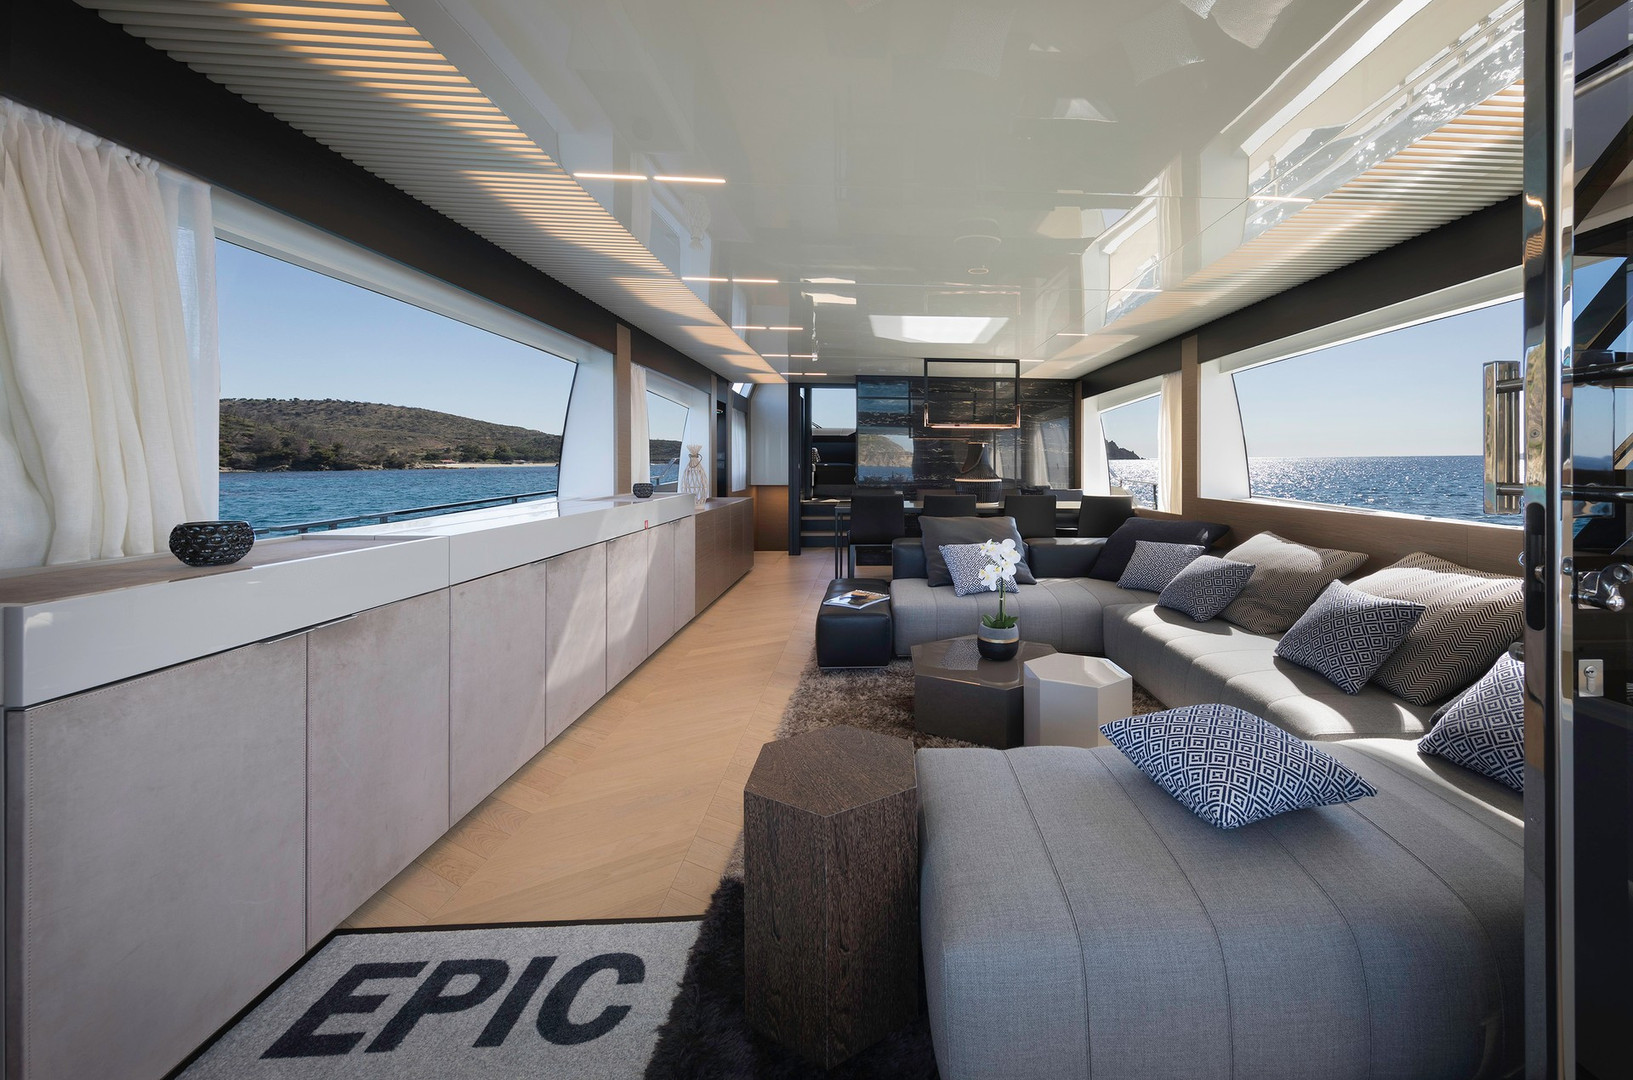 Yacht EPIC - saloon looking forward